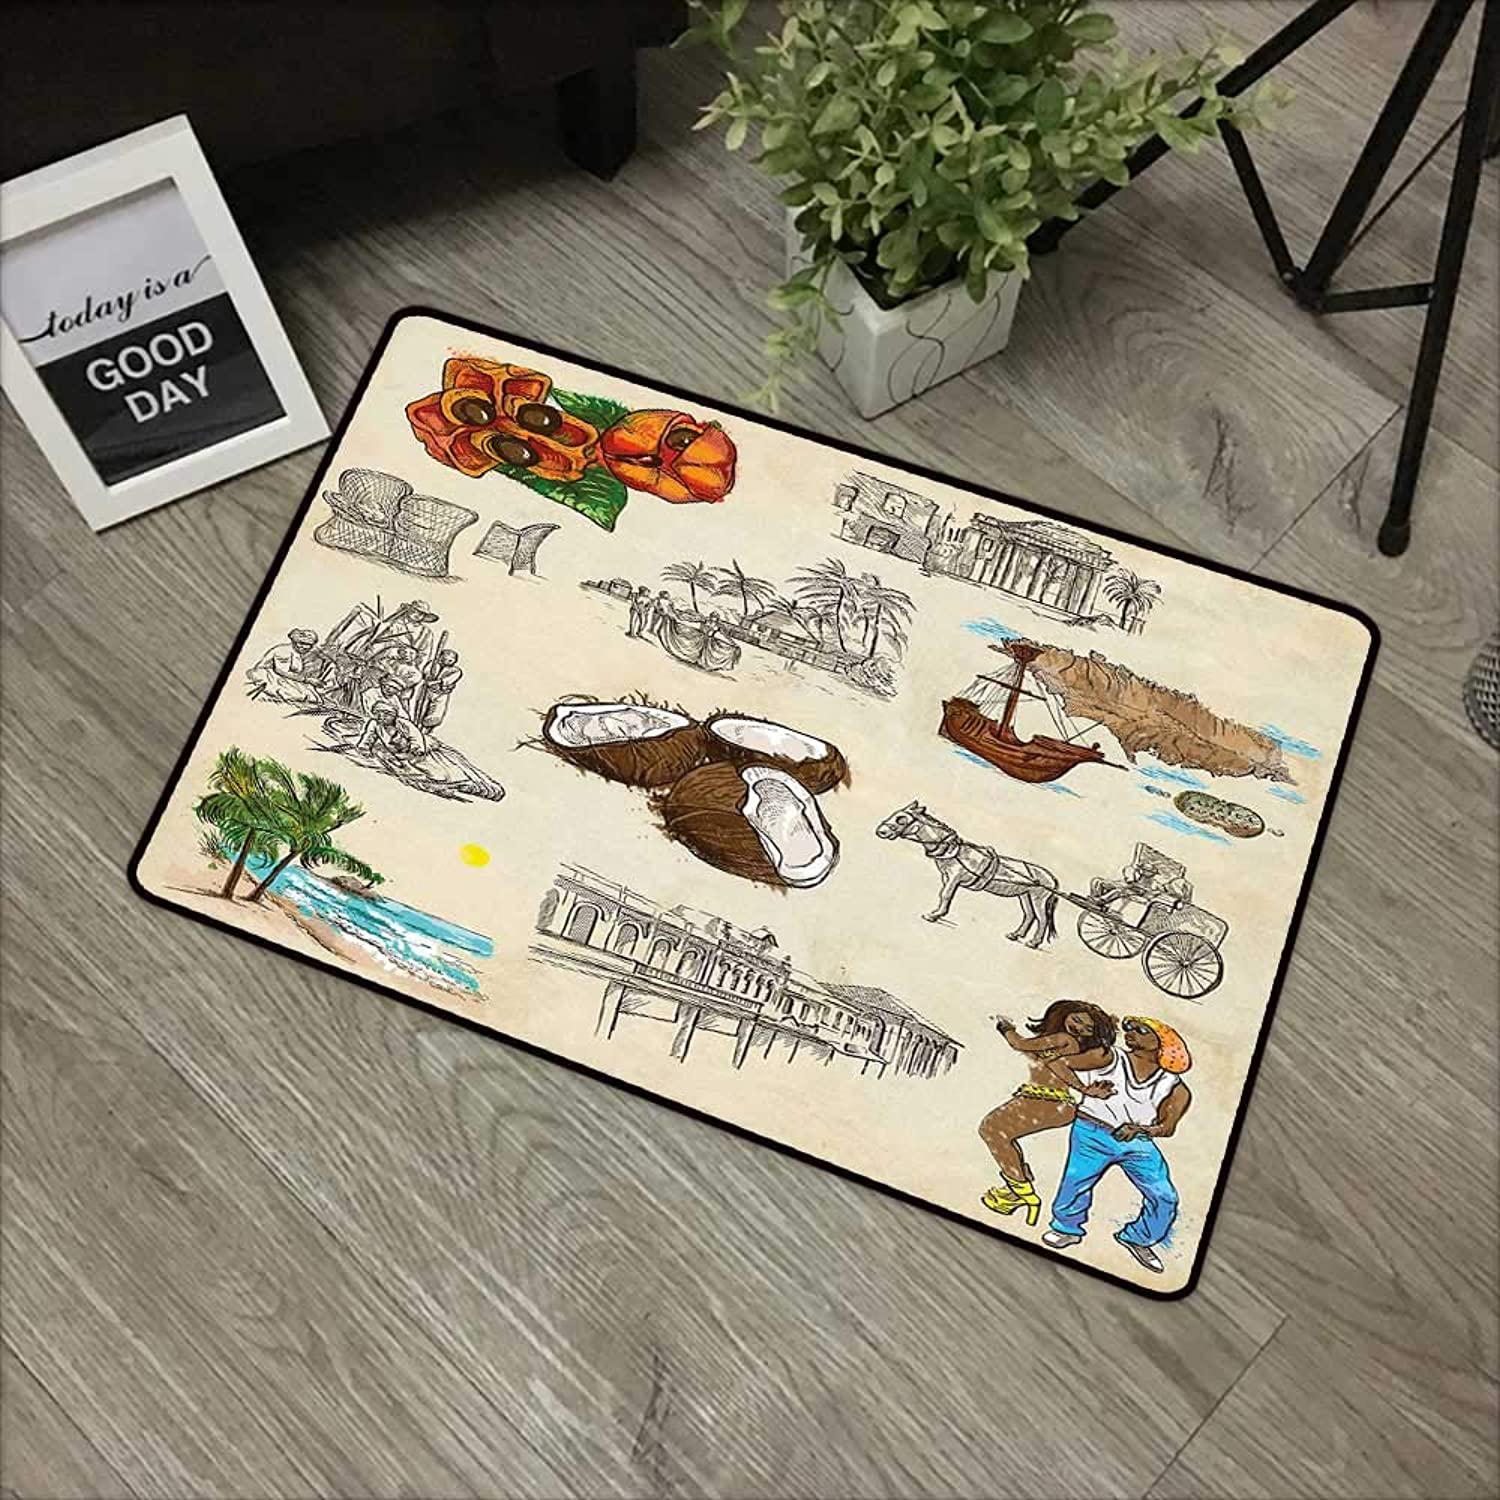 Bathroom Door mat W35 x L59 INCH Jamaican,Hand Drawn Illustrations of Elements from Caribbean Cultures Old Paper Effect,Multicolor with Non-Slip Backing Door Mat Carpet